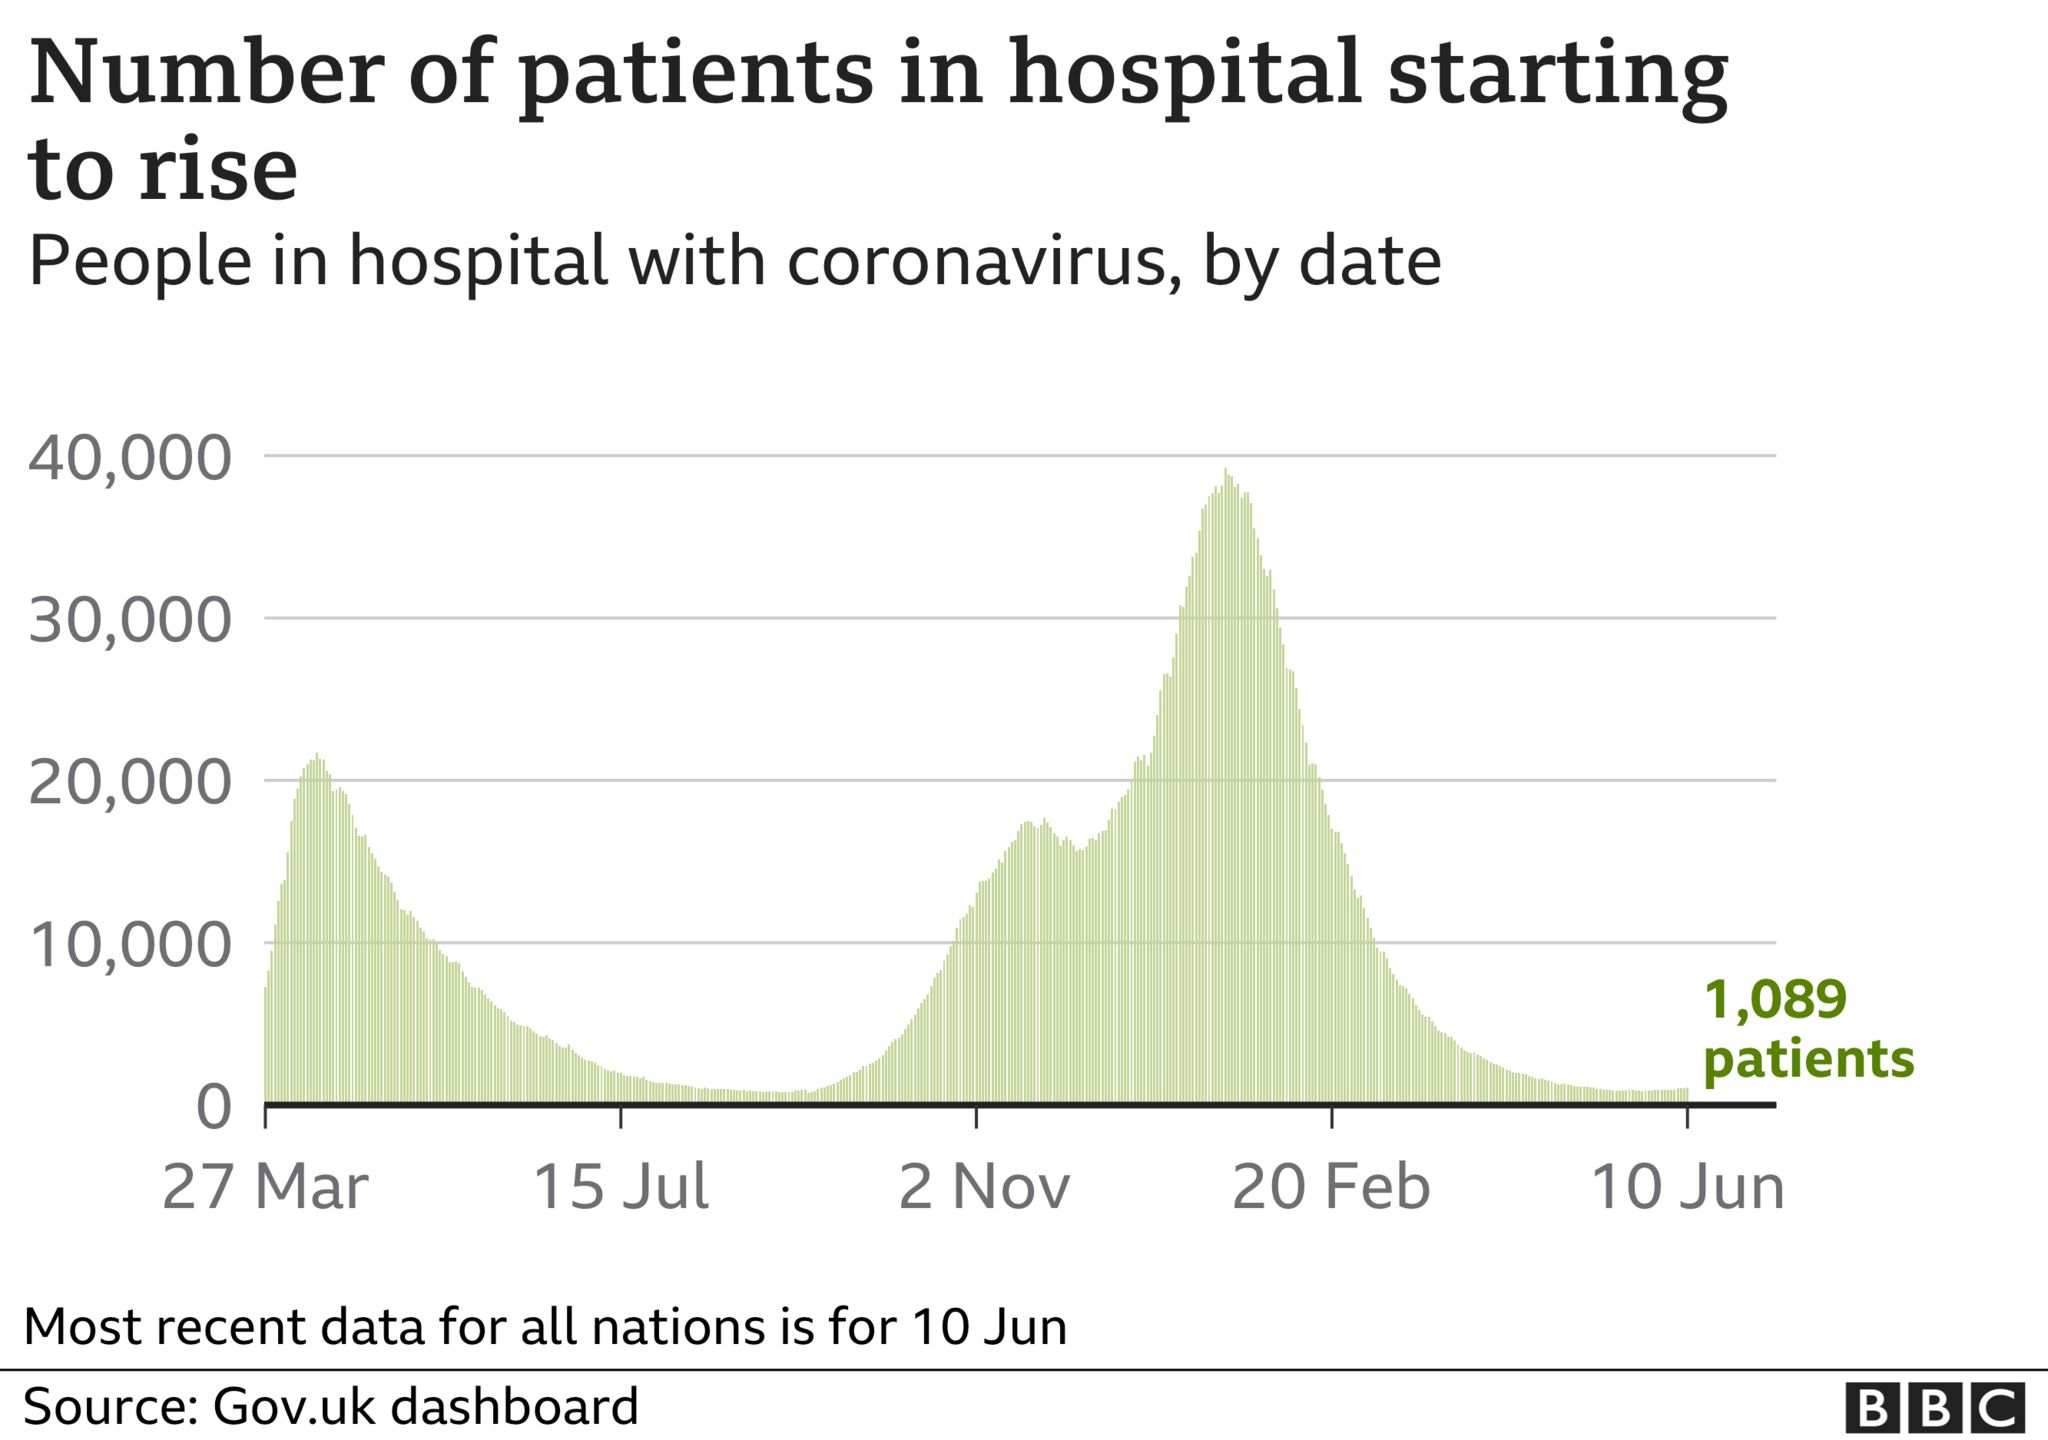 Graph showing number of patients in hospital in the UK with Covid-19 starting to rise